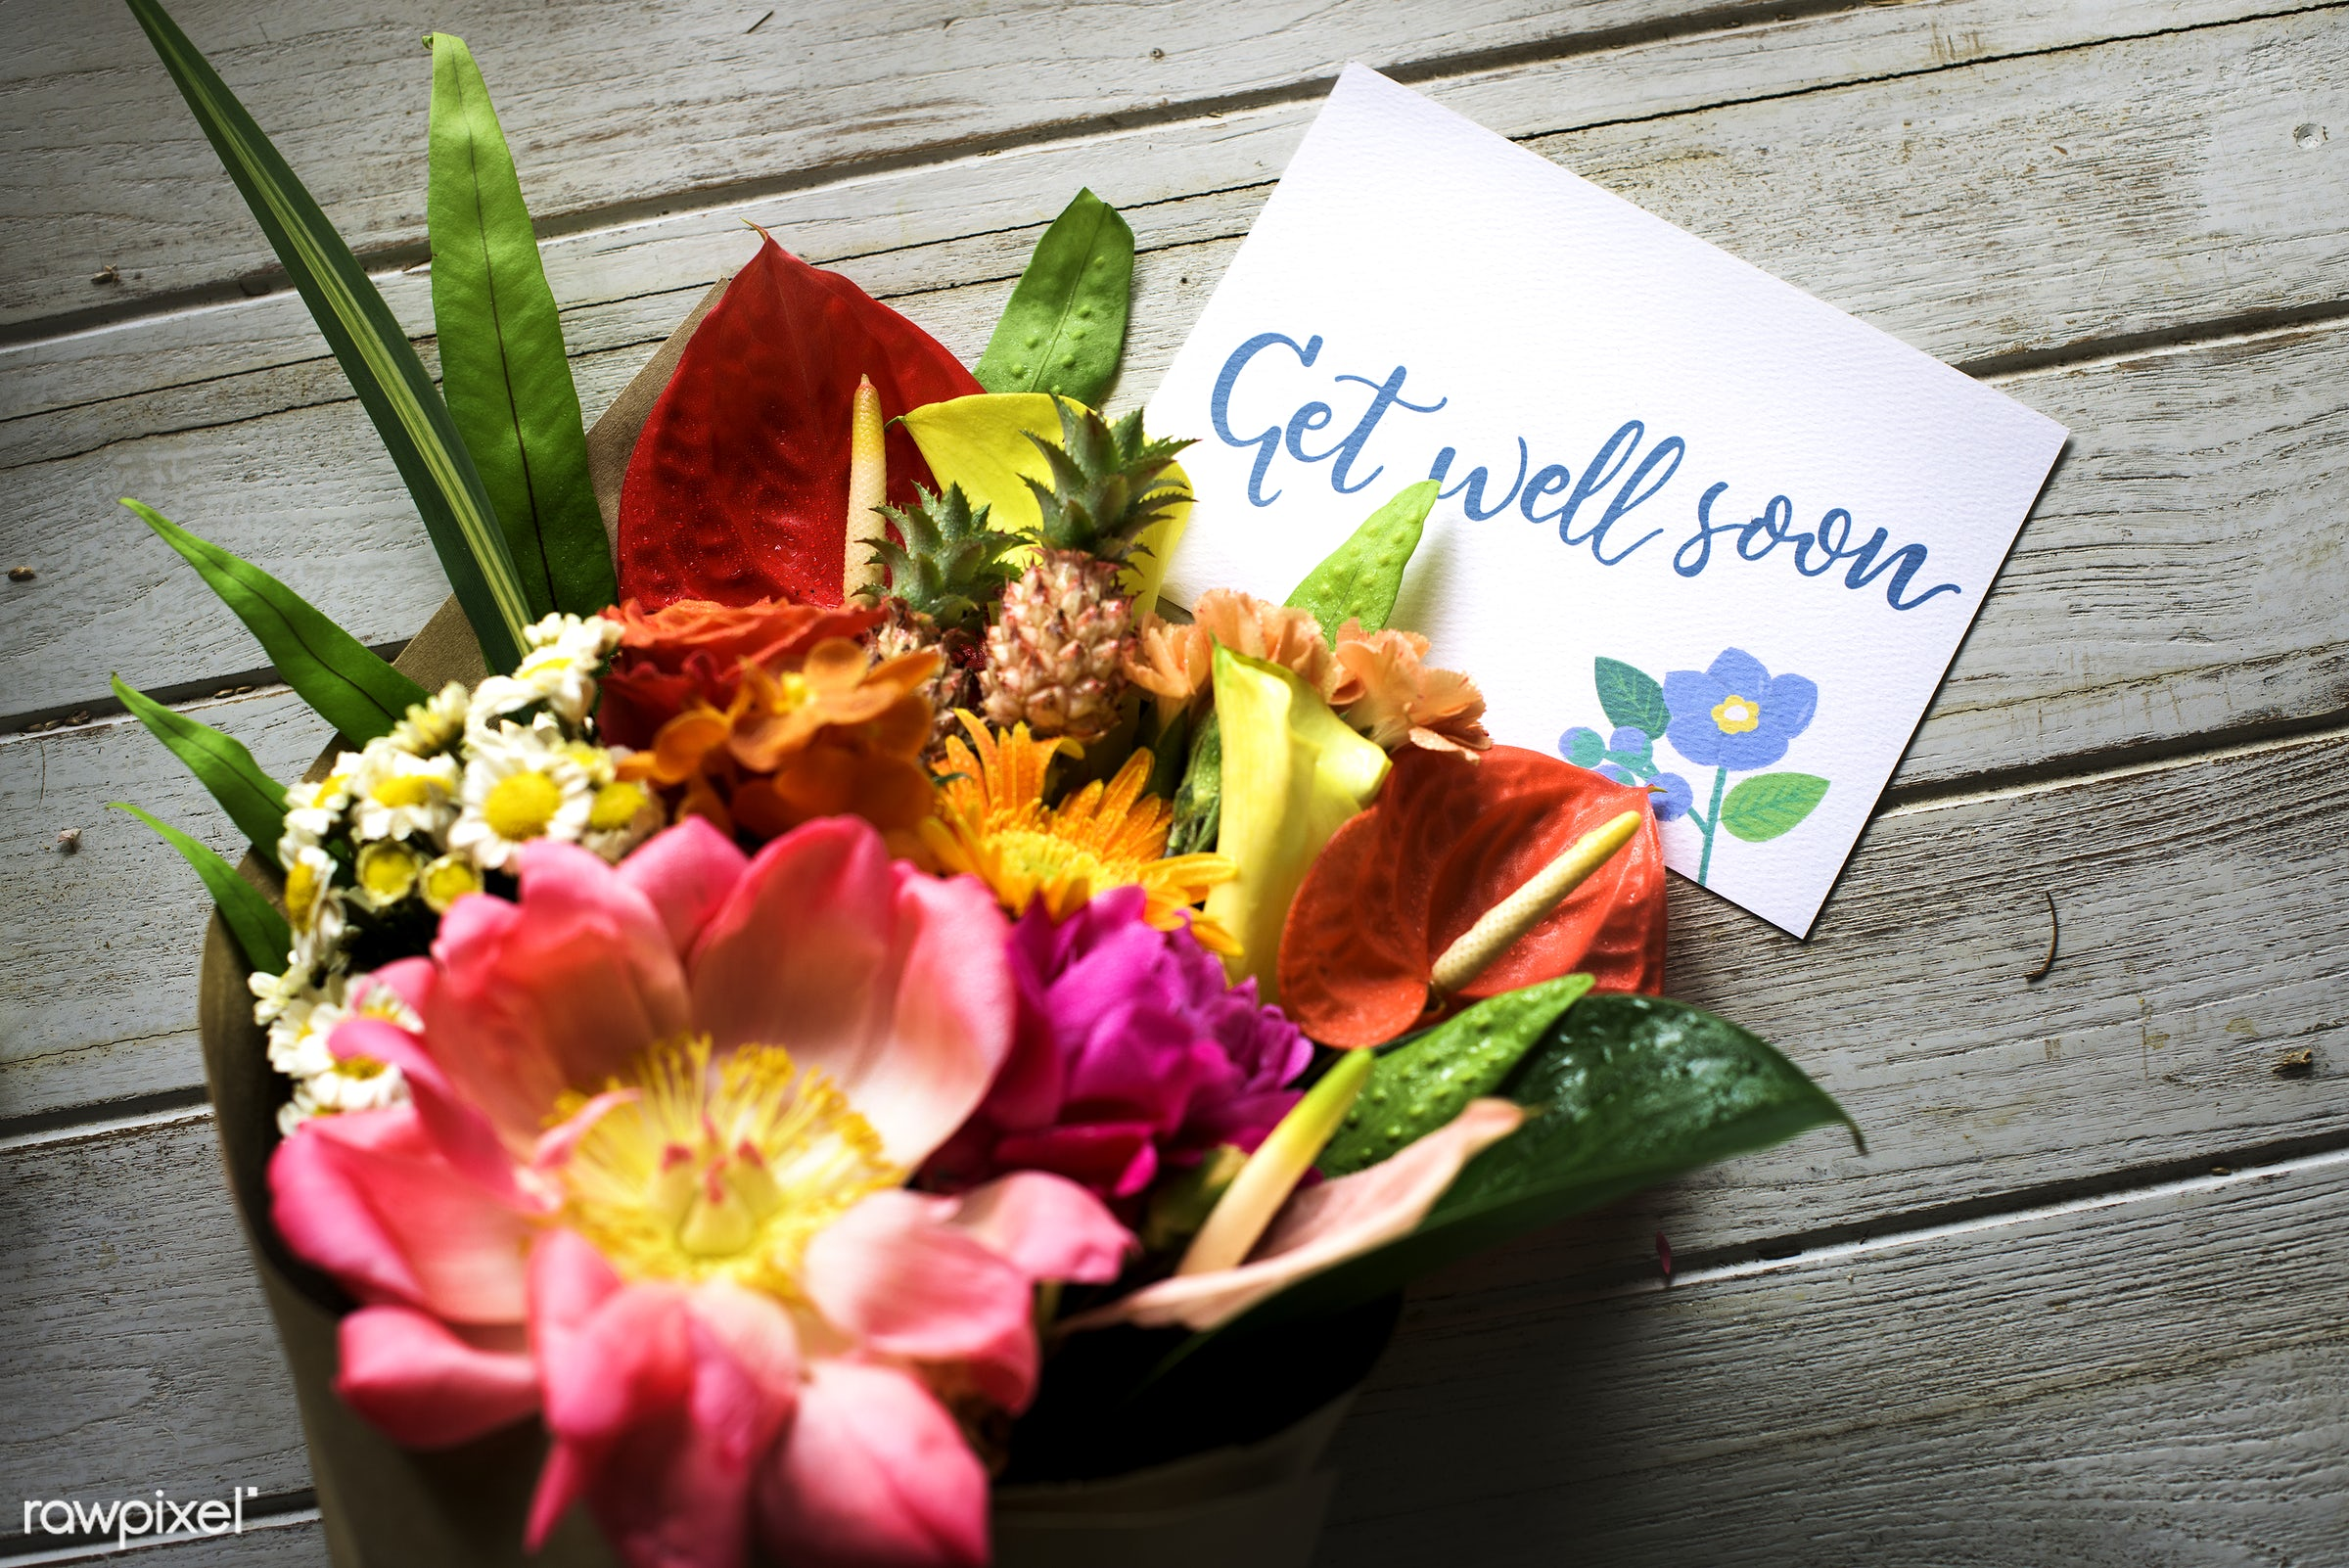 bouquet, gift, decorative, lettering, wish, well, blossom, fresh, illness, sympathy, get well, card, note, flower, greeting...